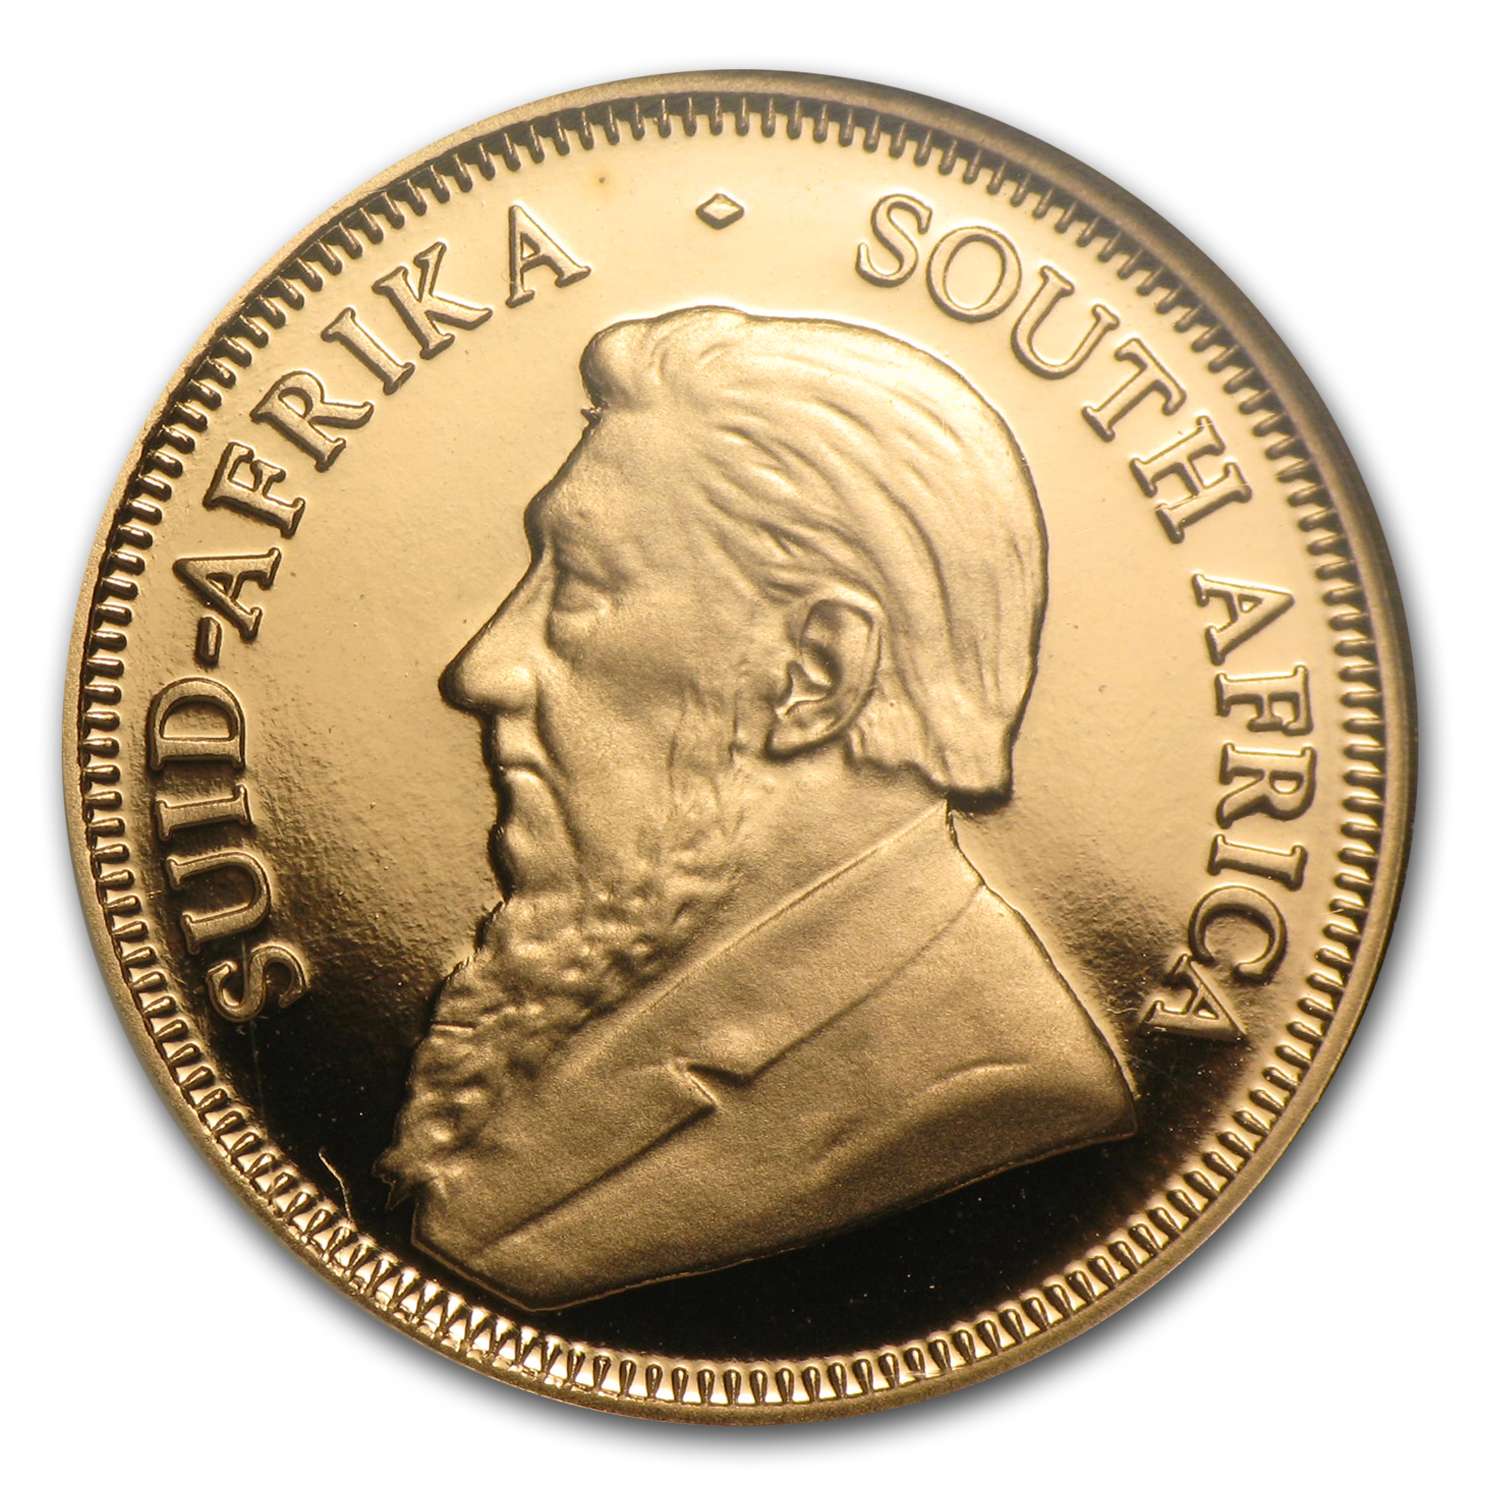 2007 South Africa 1/4 oz Gold Krugerrand PF-69 NGC